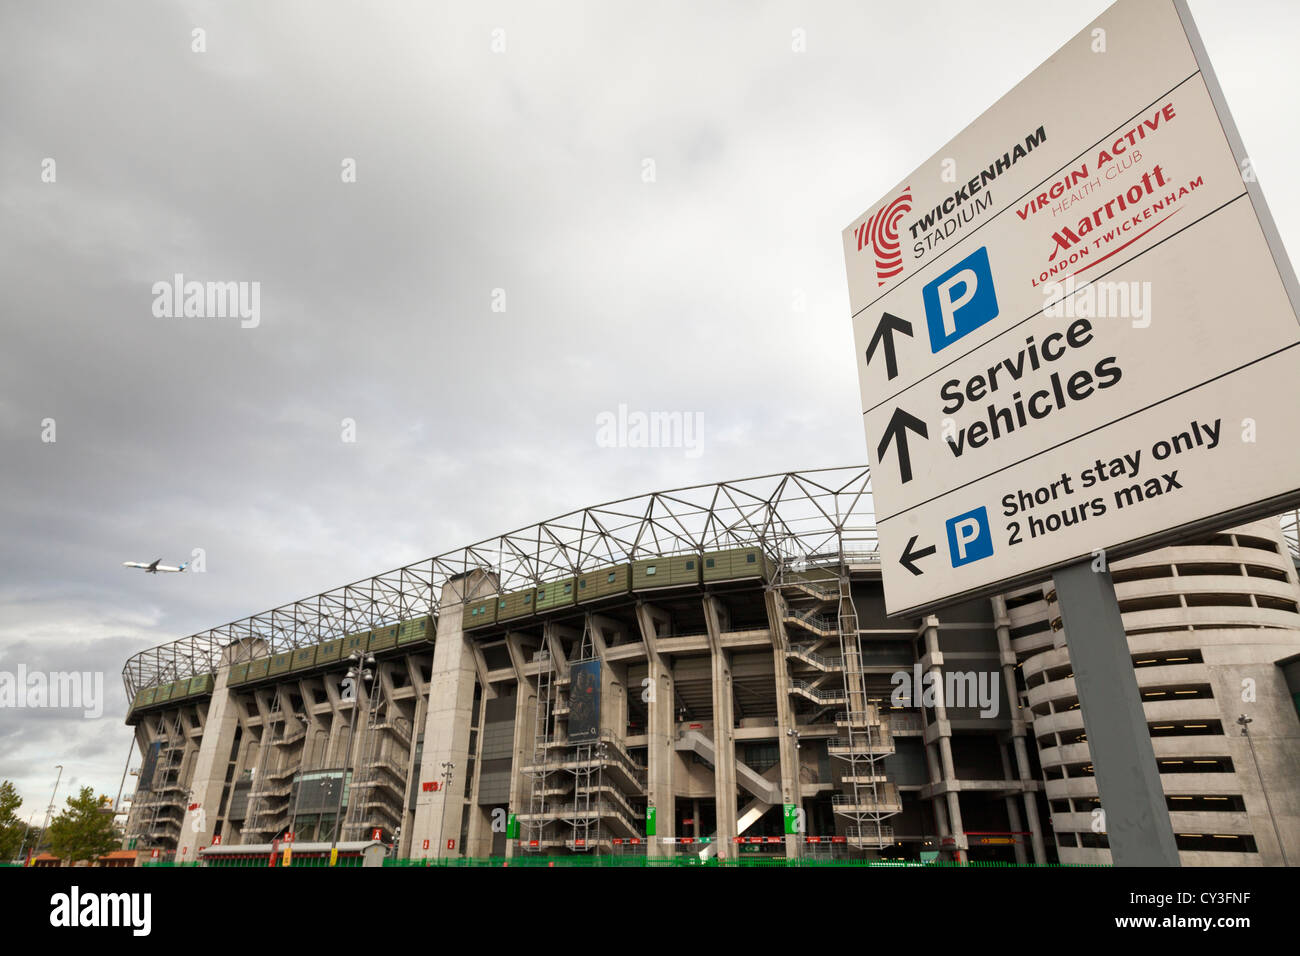 Twickenham stadium with parking information sign and aircraft. - Stock Image